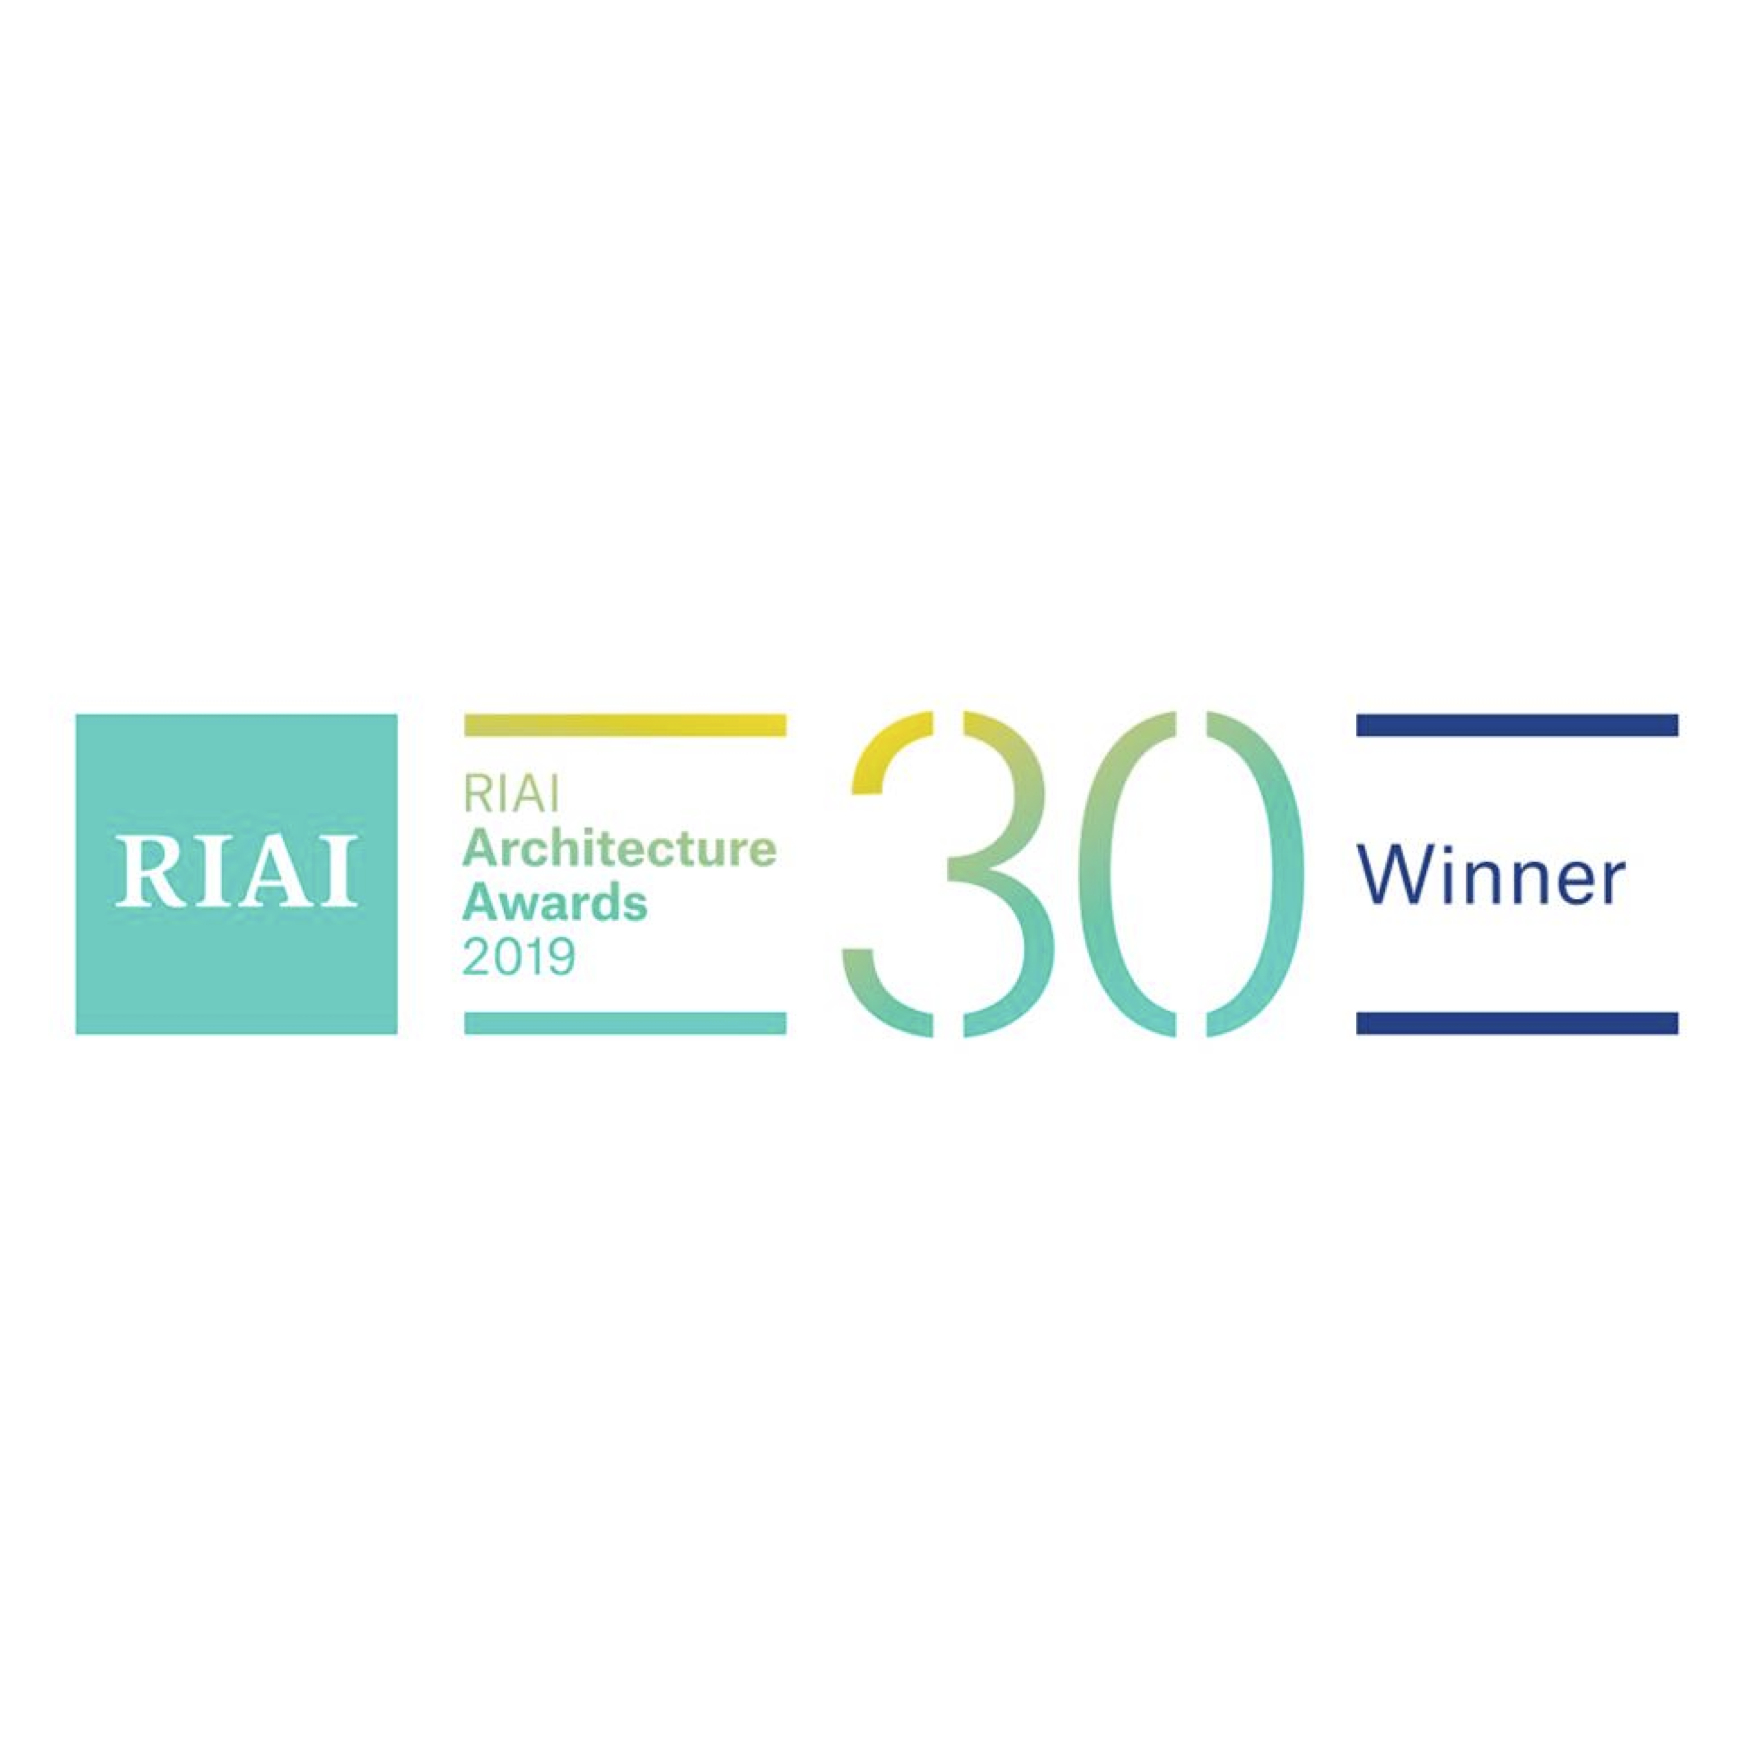 RIAI Square Winner 2019.jpg